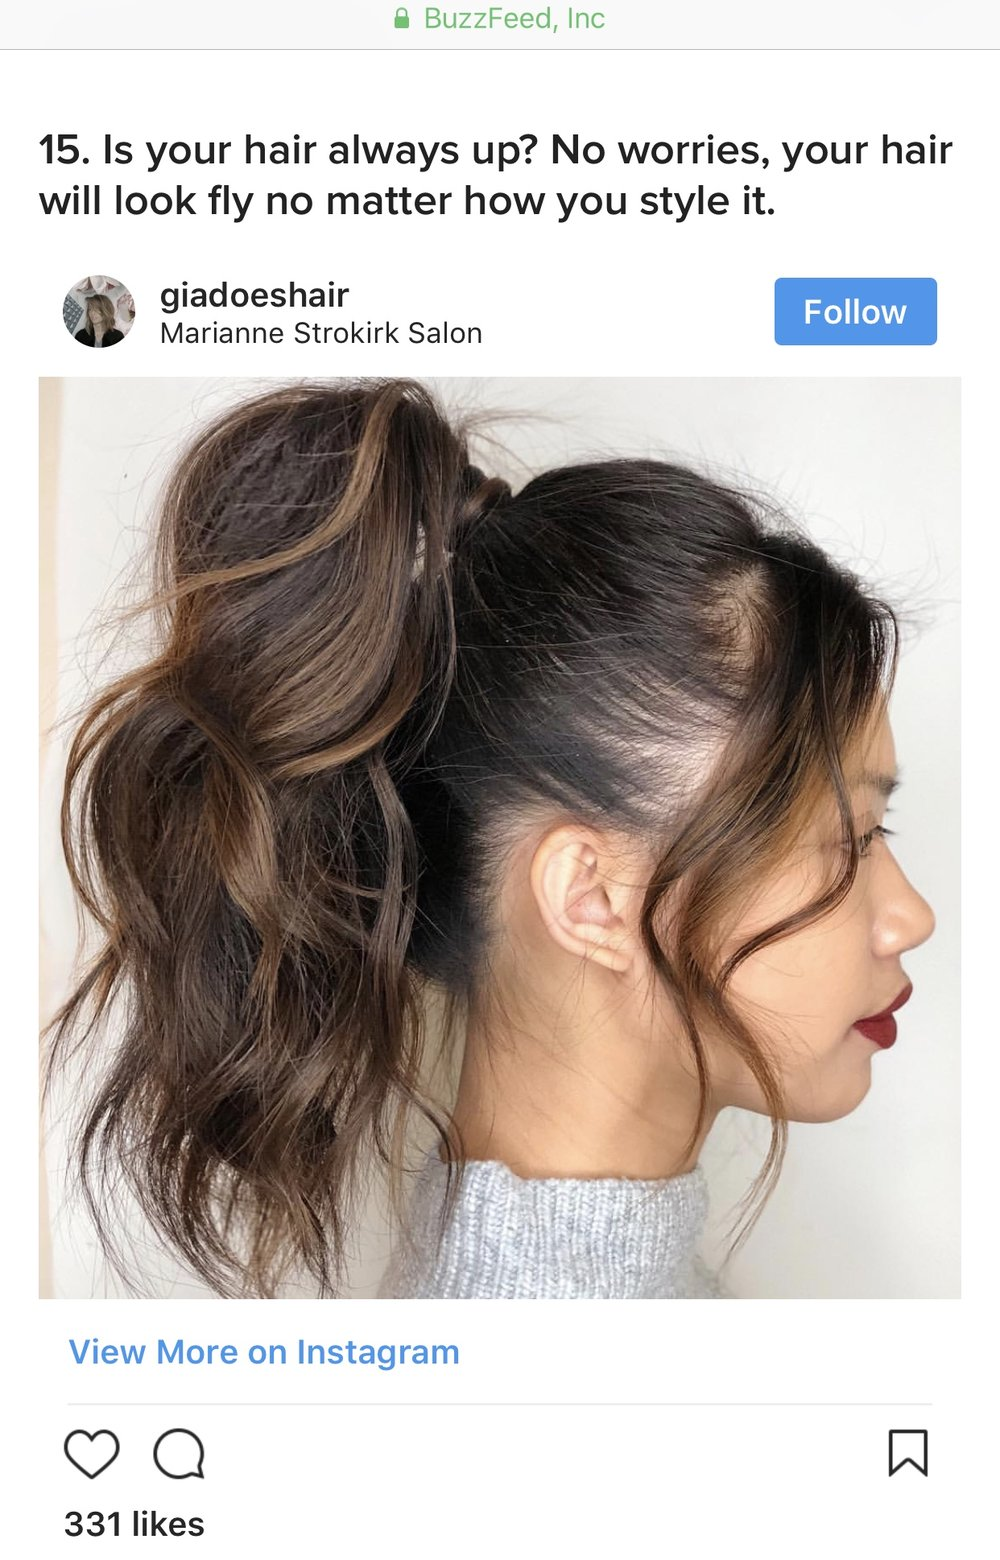 18 Balayage Hair Pictures You Should Show Your Stylist Next Time You Want A Change -